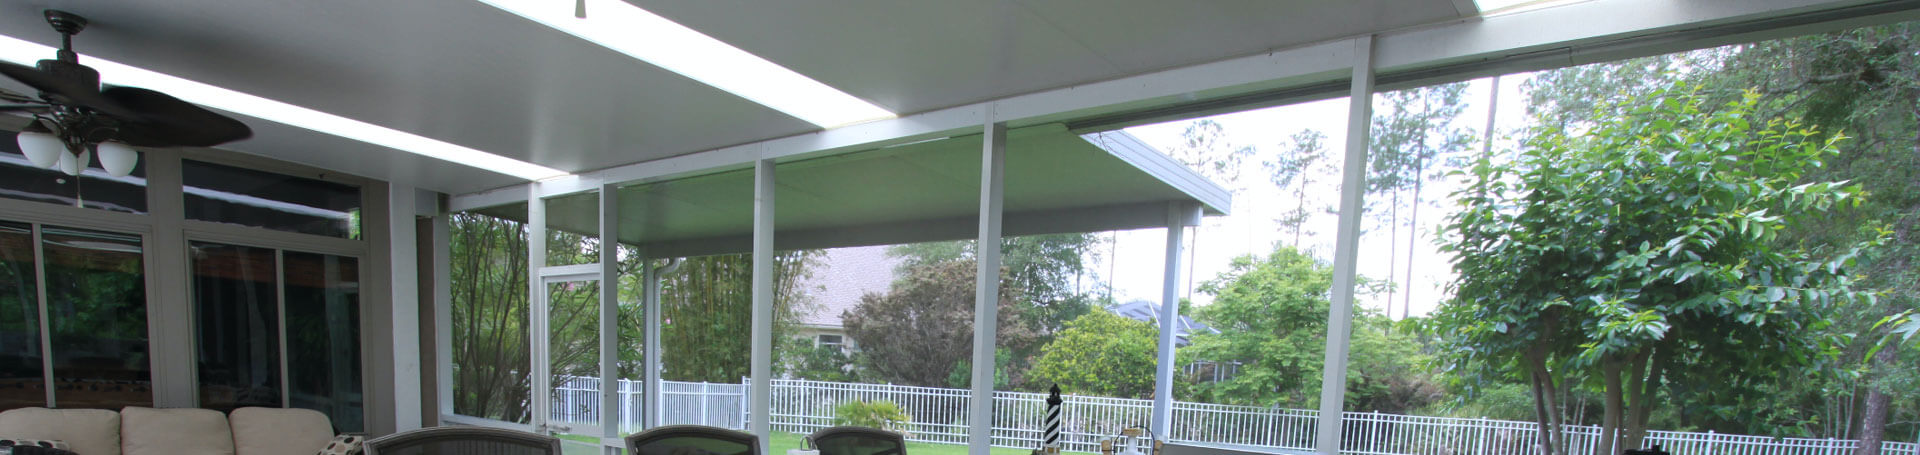 Garage Awning Extension Patio Covers Carports Awnings Lifetime Enclosures